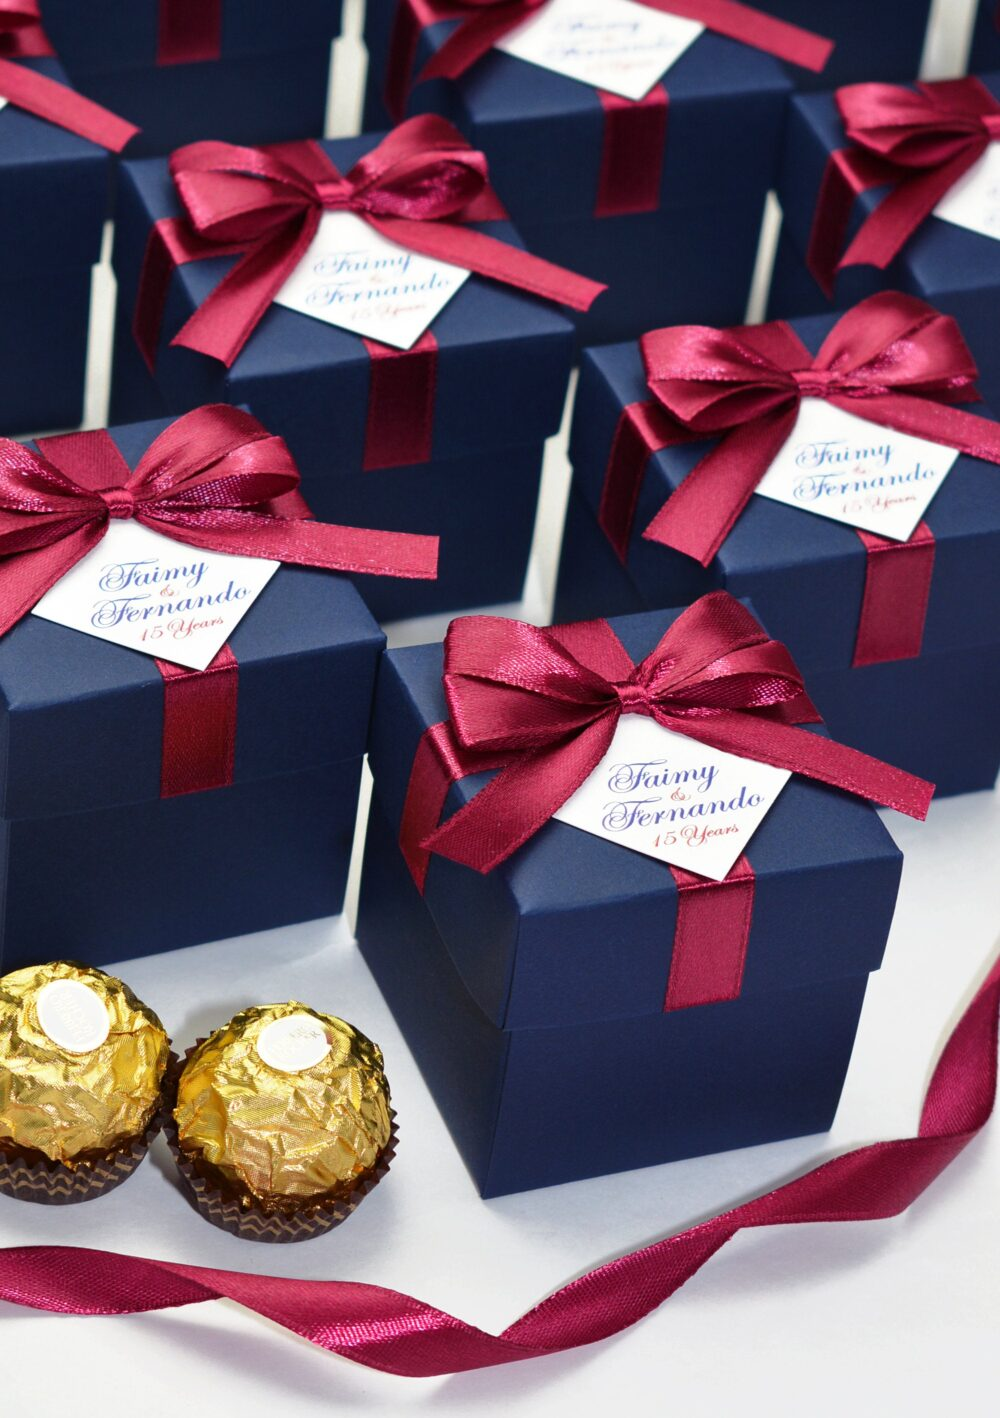 Navy Blue & Burgundy Personalized Wedding Favor Box With Satin Ribbon Bow & Your Names, Anniversary Bonbonniere, Boxes For Guests